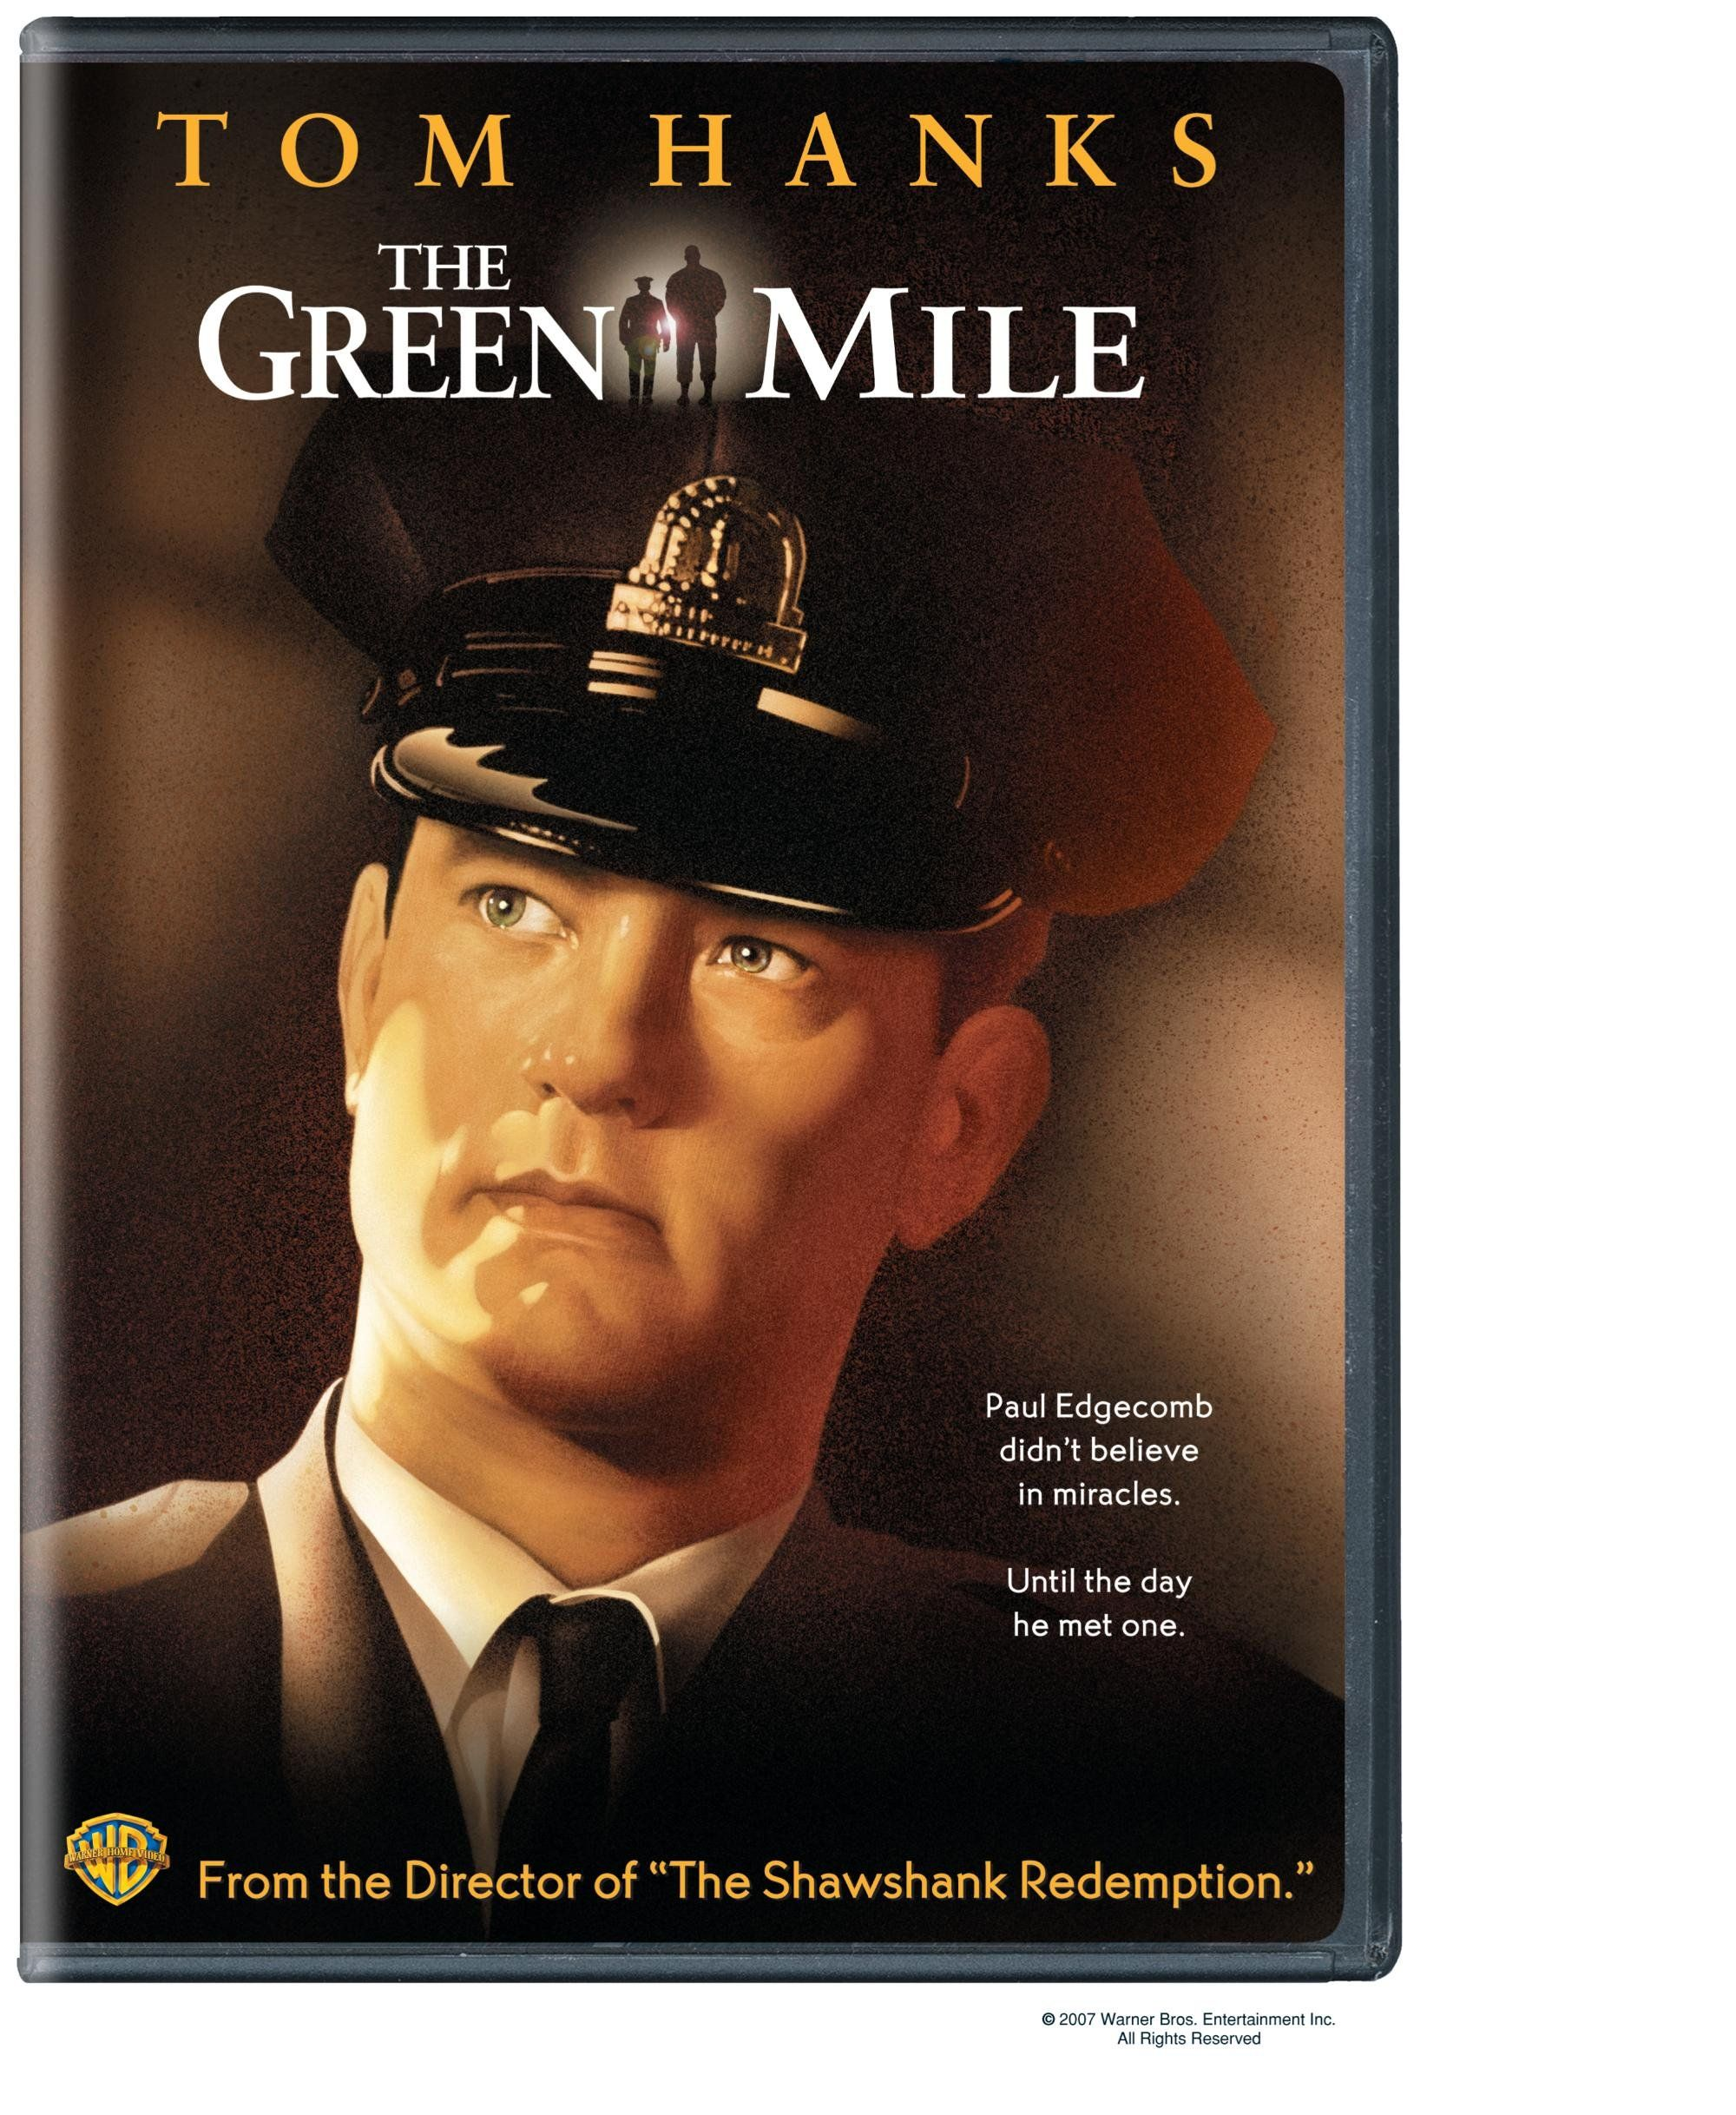 The Green Mile (Single Disc Edition) Tom hanks, Miles